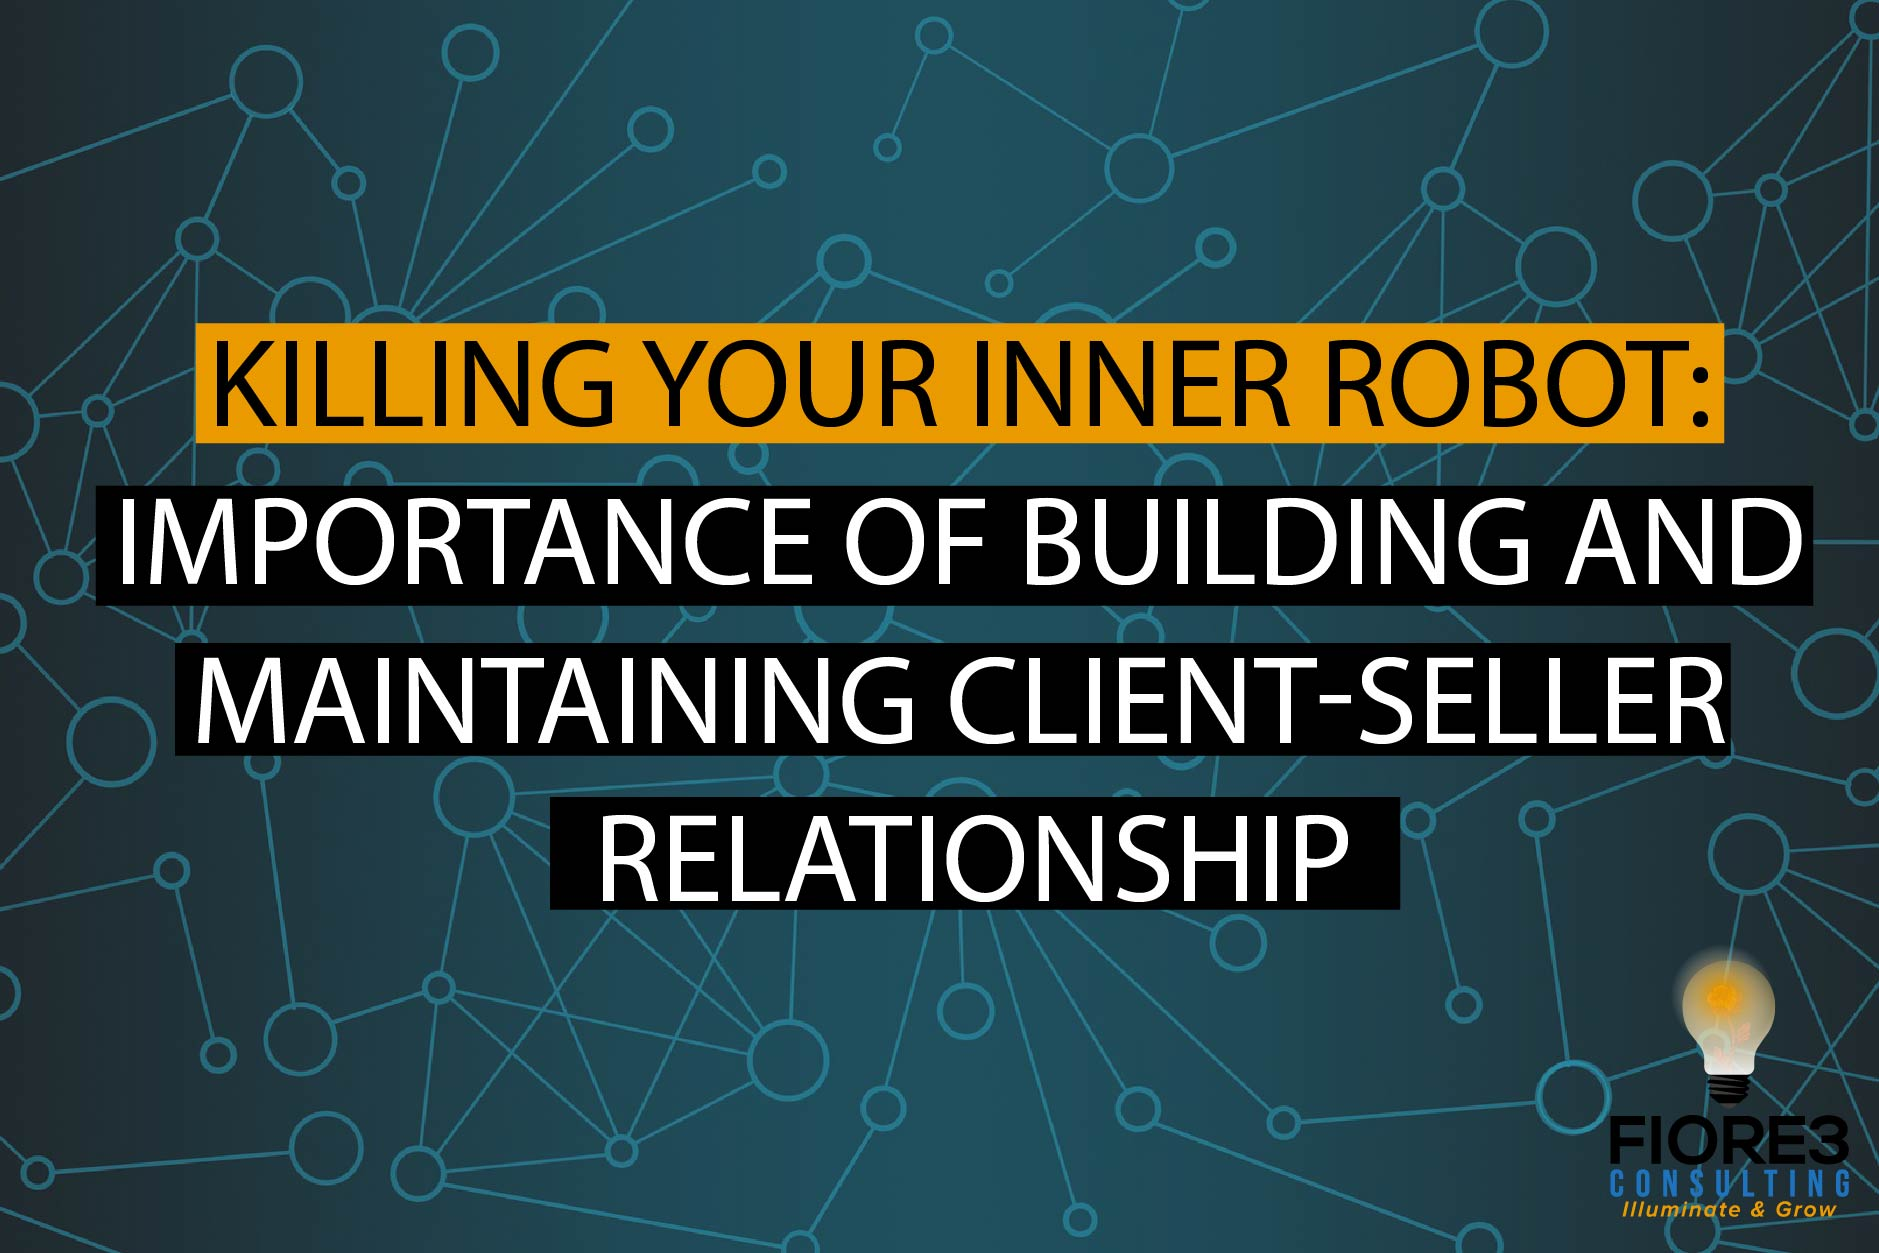 Client-Seller Relationship